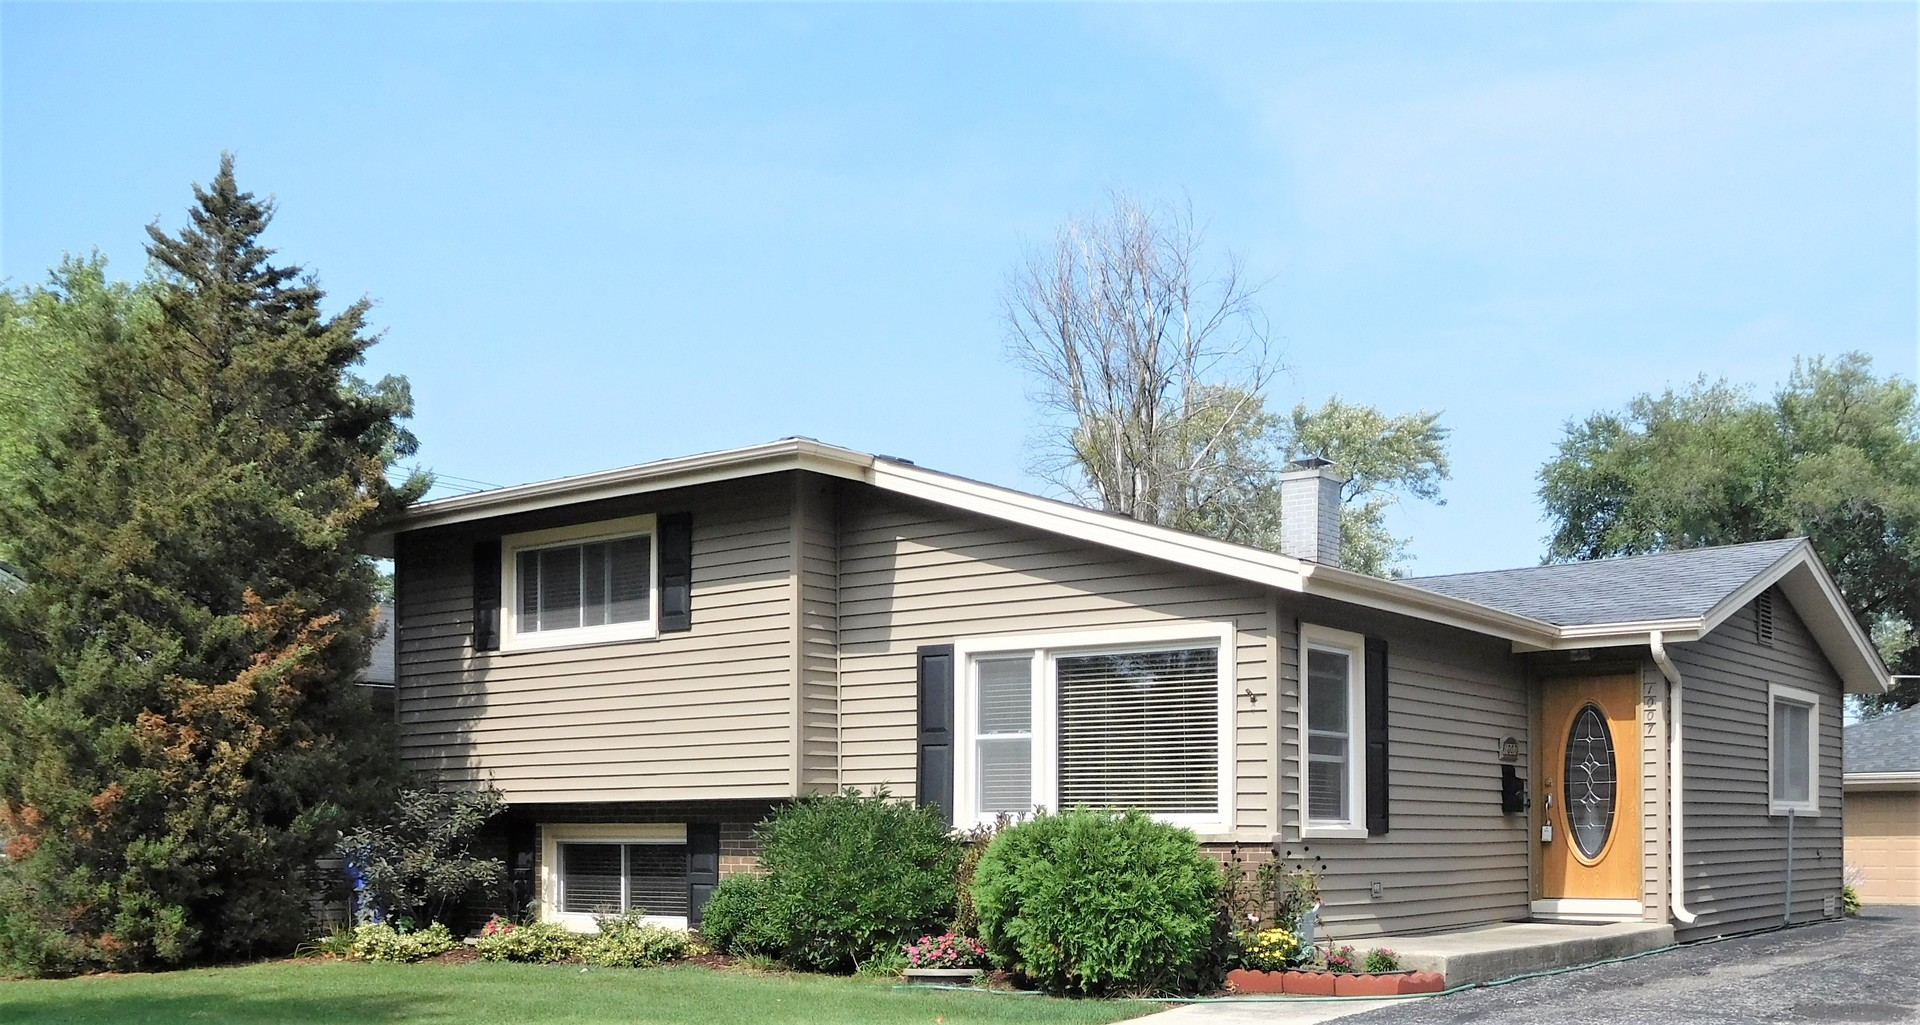 One of Wheaton 3 Bedroom Homes for Sale at 1007 Wilson Avenue